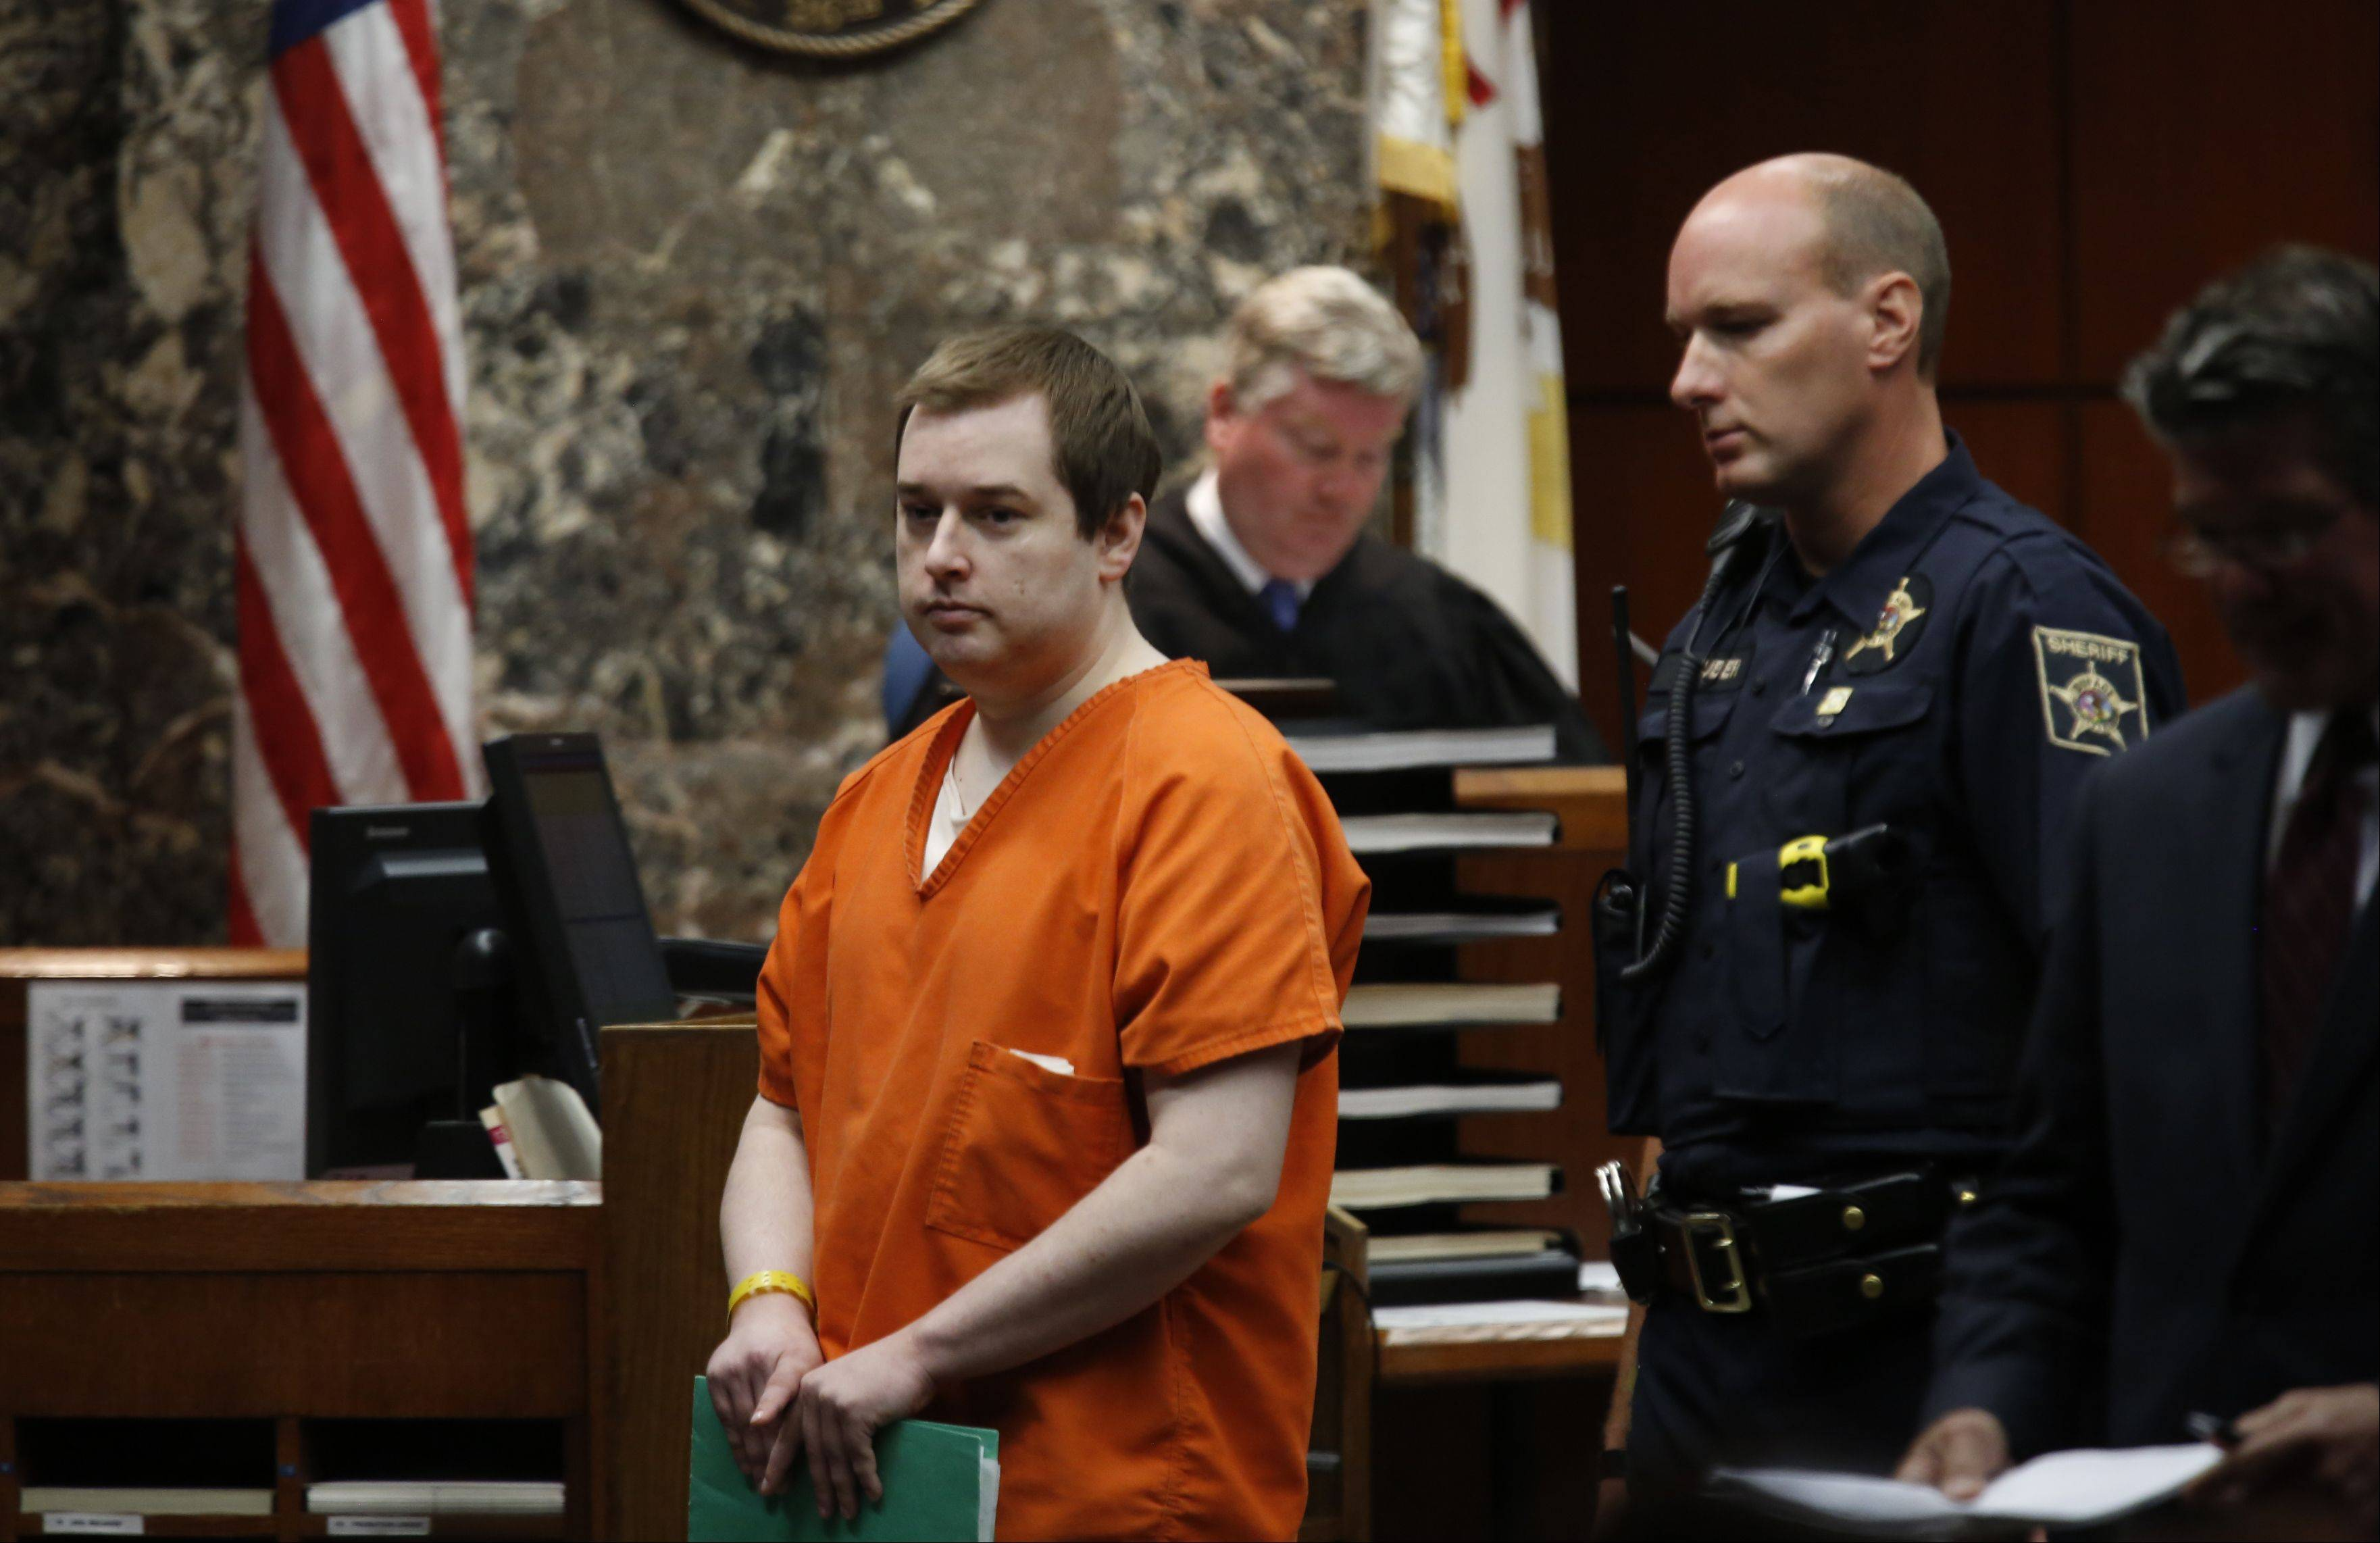 Jacob Nodarse appeared in DuPage County court Monday, and was sentenced to 75 years in prison for the slayings of three members of a Darien family. He pleaded guilty but mentally ill to the 2010 shooting deaths of Jeffrey and Lori Kramer and their son Michael.